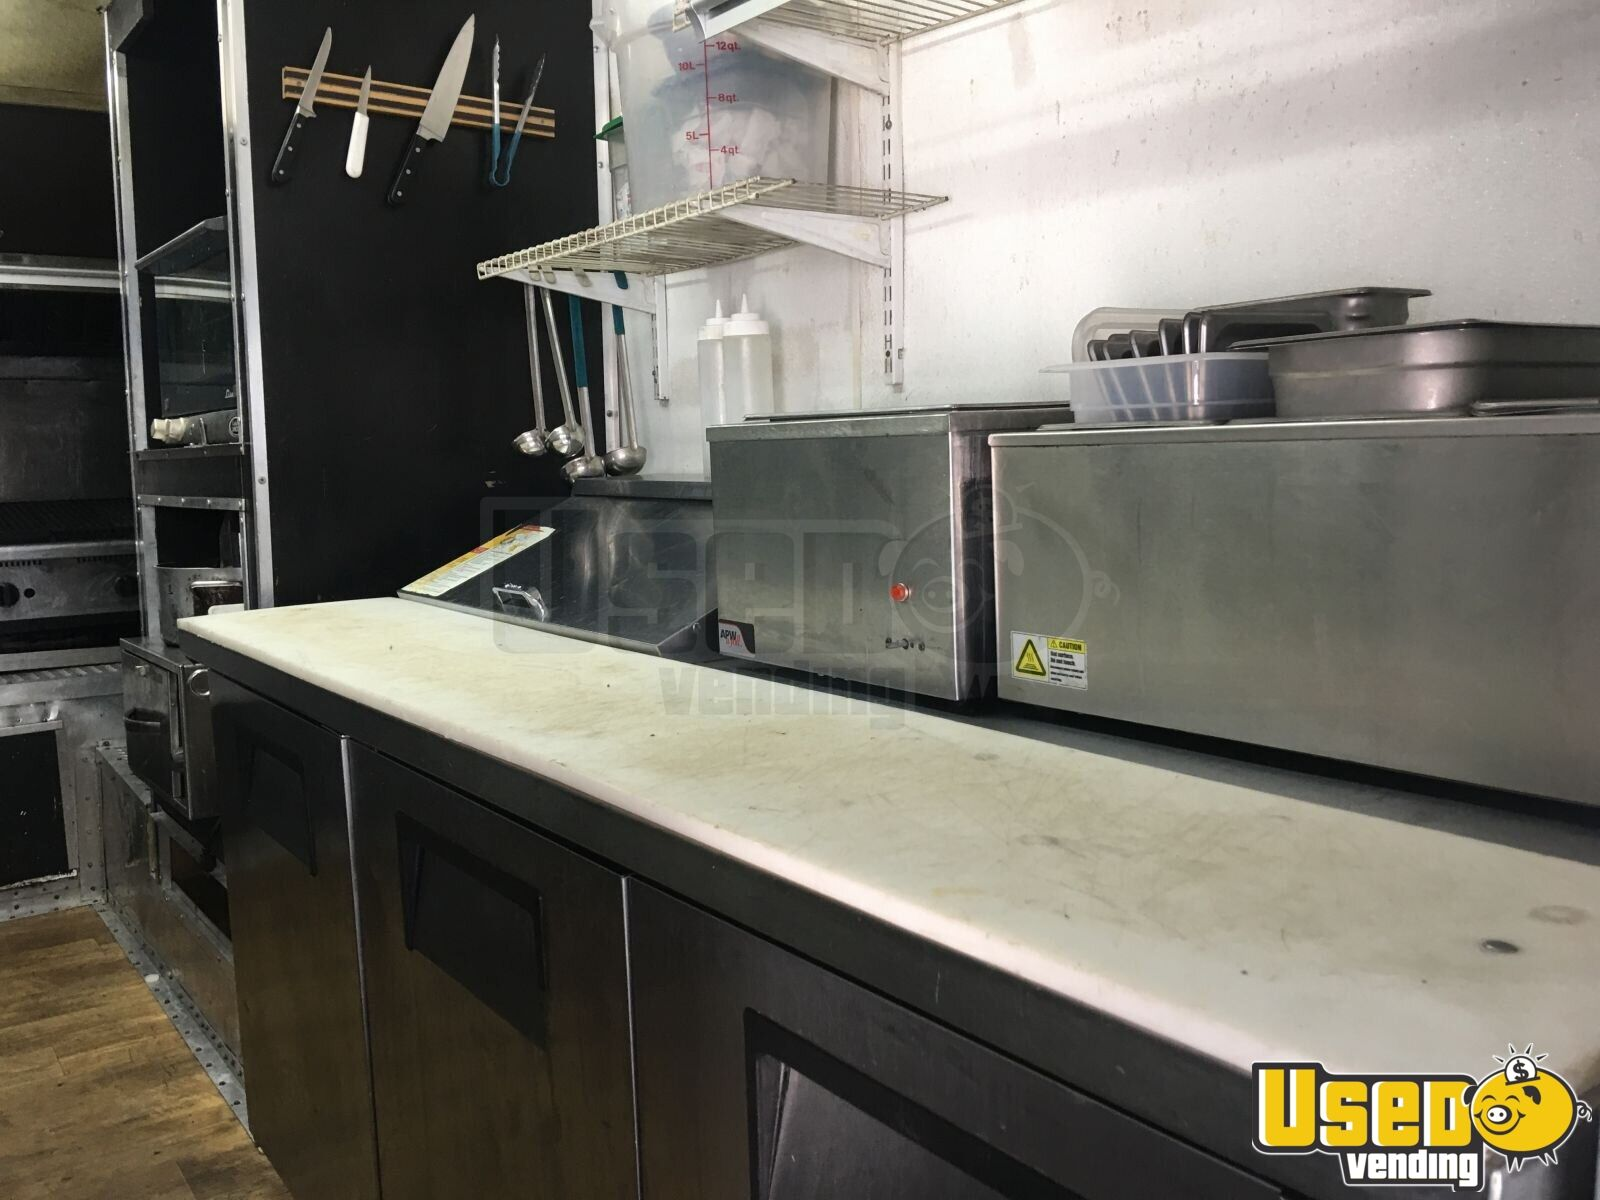 Used Food Trucks For Sale Under 5000 >> Ford Food Truck | Used Food Truck for Sale in Colorado